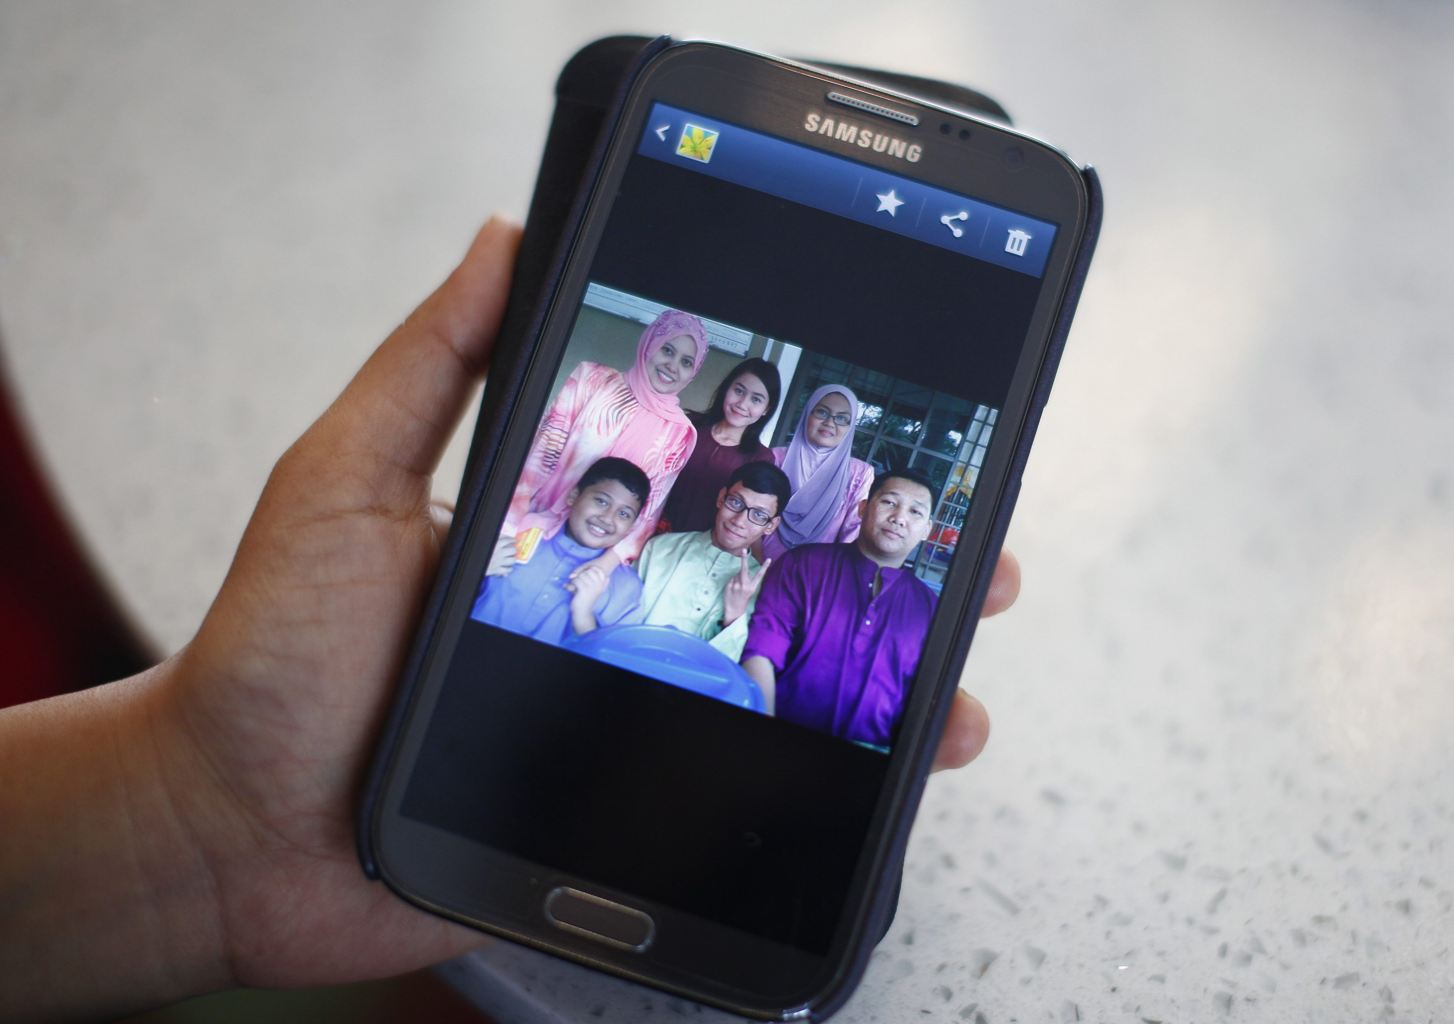 Arni Marlina, 36, a family member of a passenger onboard the missing Malaysia Airlines flight MH370, shows a family picture on her mobile phone, at a hotel in Putrajaya March 9, 2014